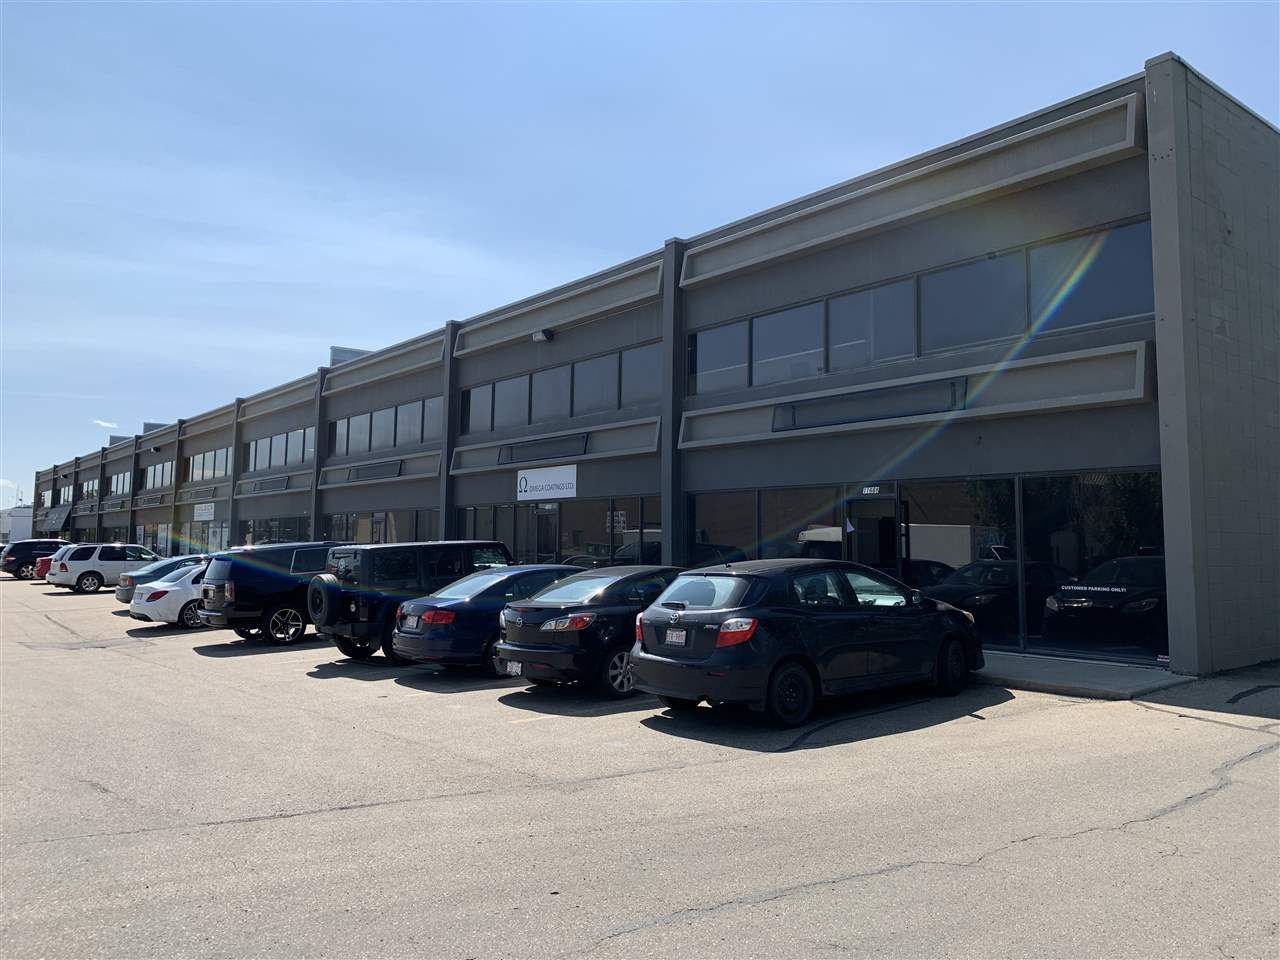 3540 sf unit office/showroom/ warehouse space - Rare single bay with 8x10 dock loading door -20' clear ceilings - Easy access to 156 Street, 118 Avenue, Yellowhead Trail and 170 Street